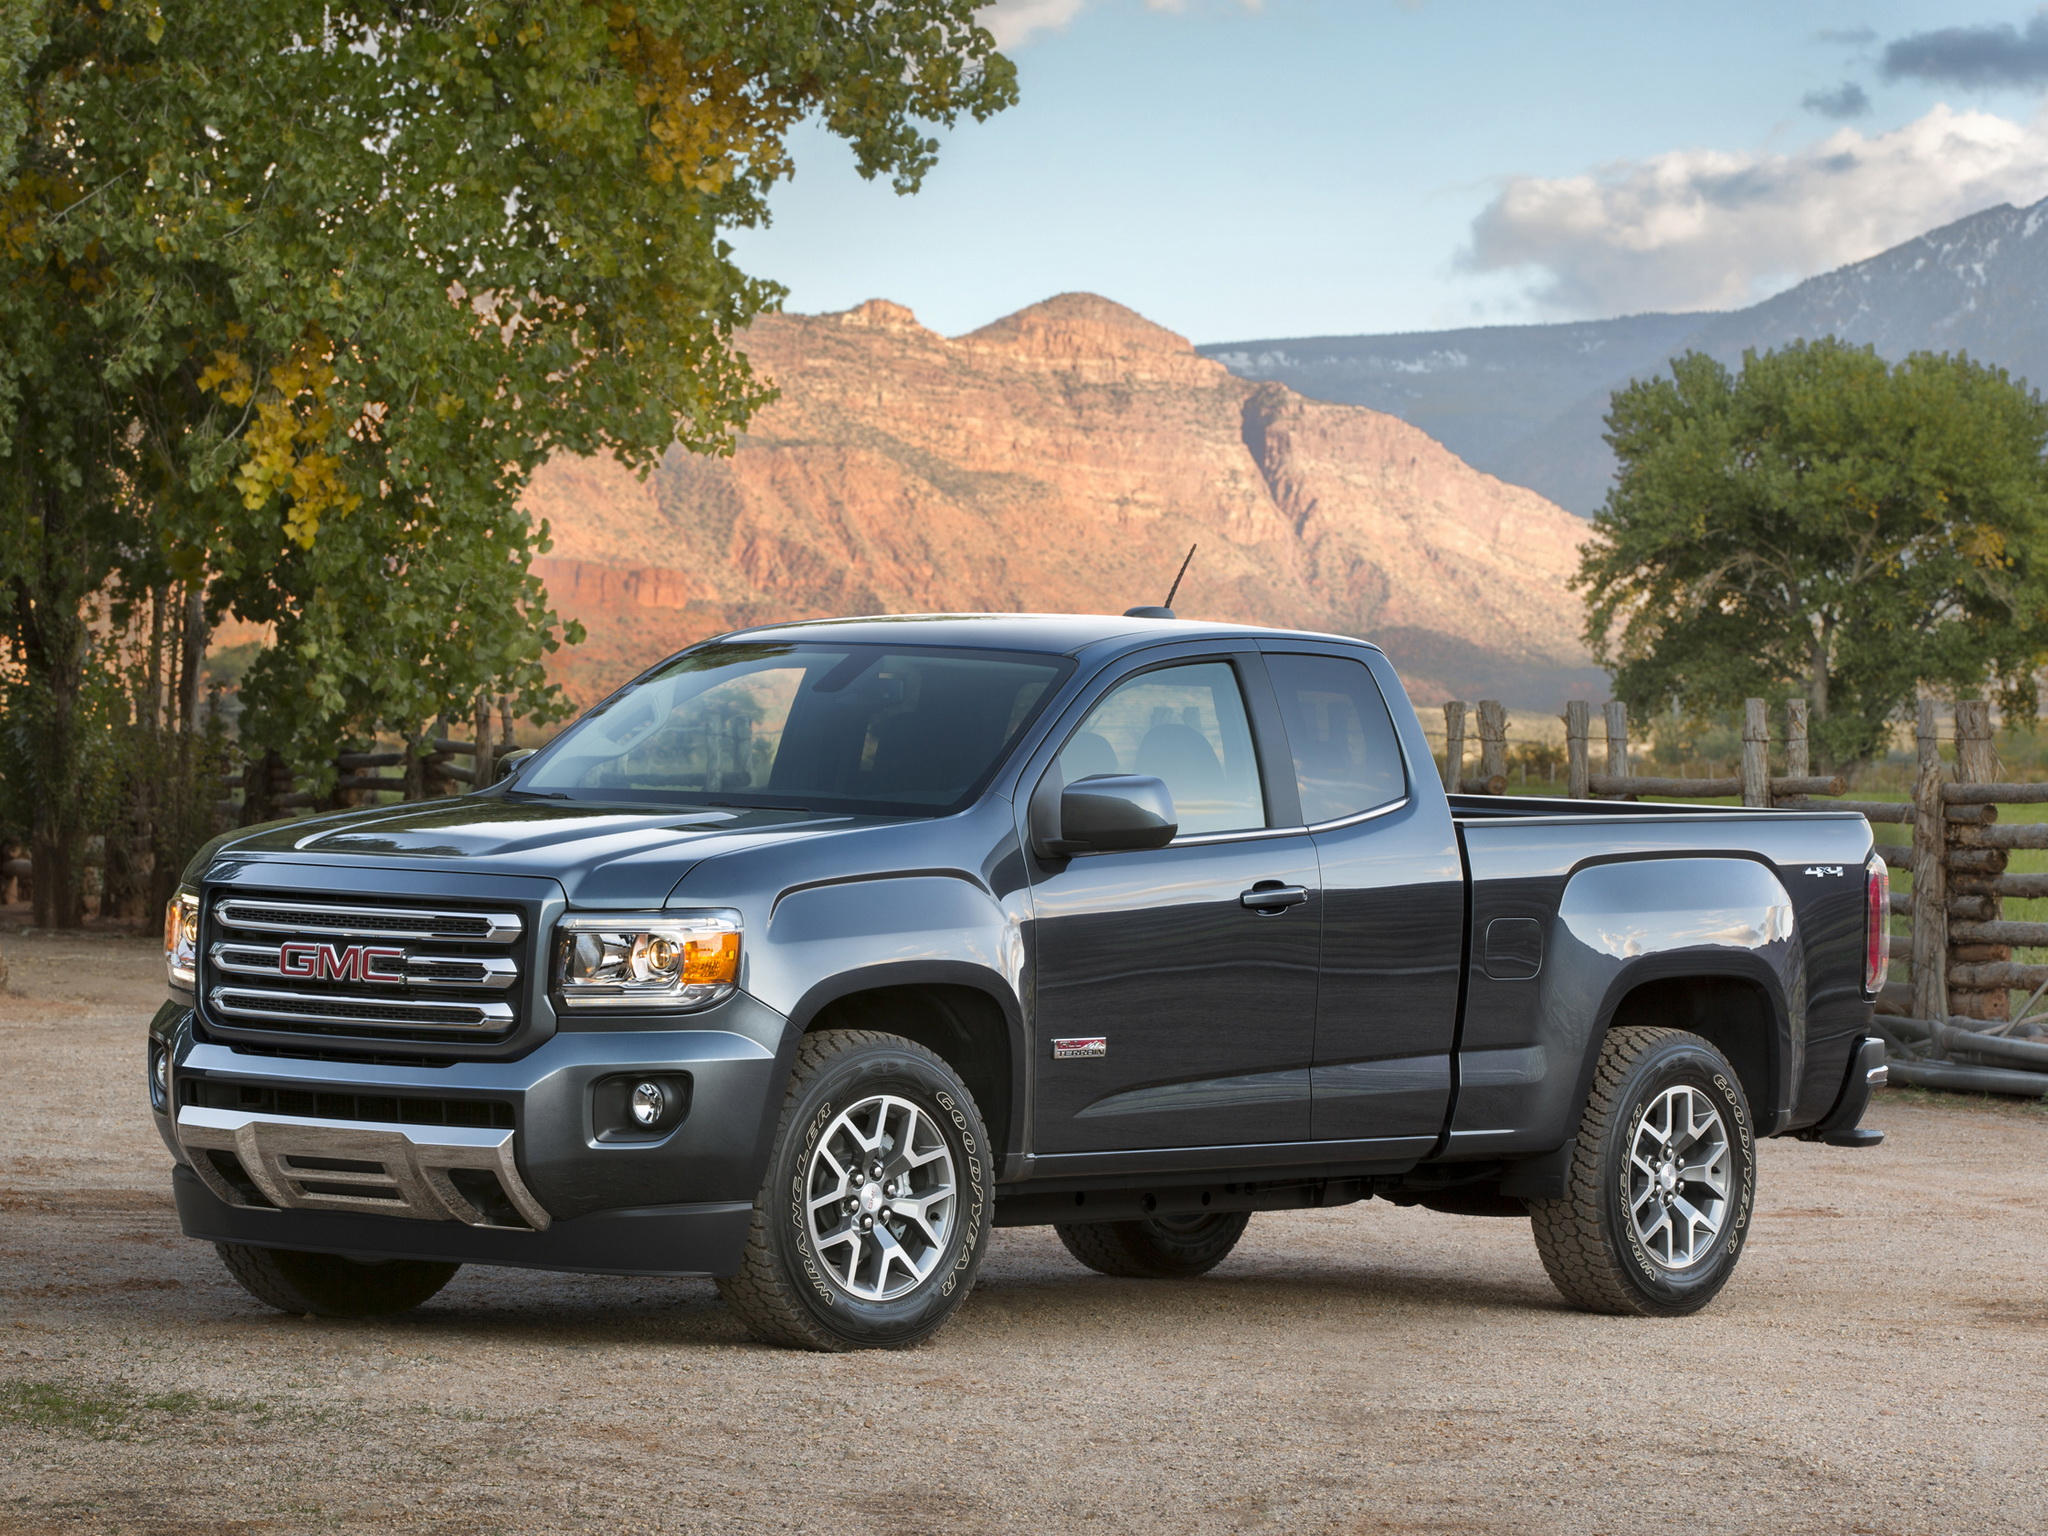 2014 gmc canyon all terrain extended cab pickup 4x4 fs wallpaper 2048x1536 230695 wallpaperup. Black Bedroom Furniture Sets. Home Design Ideas